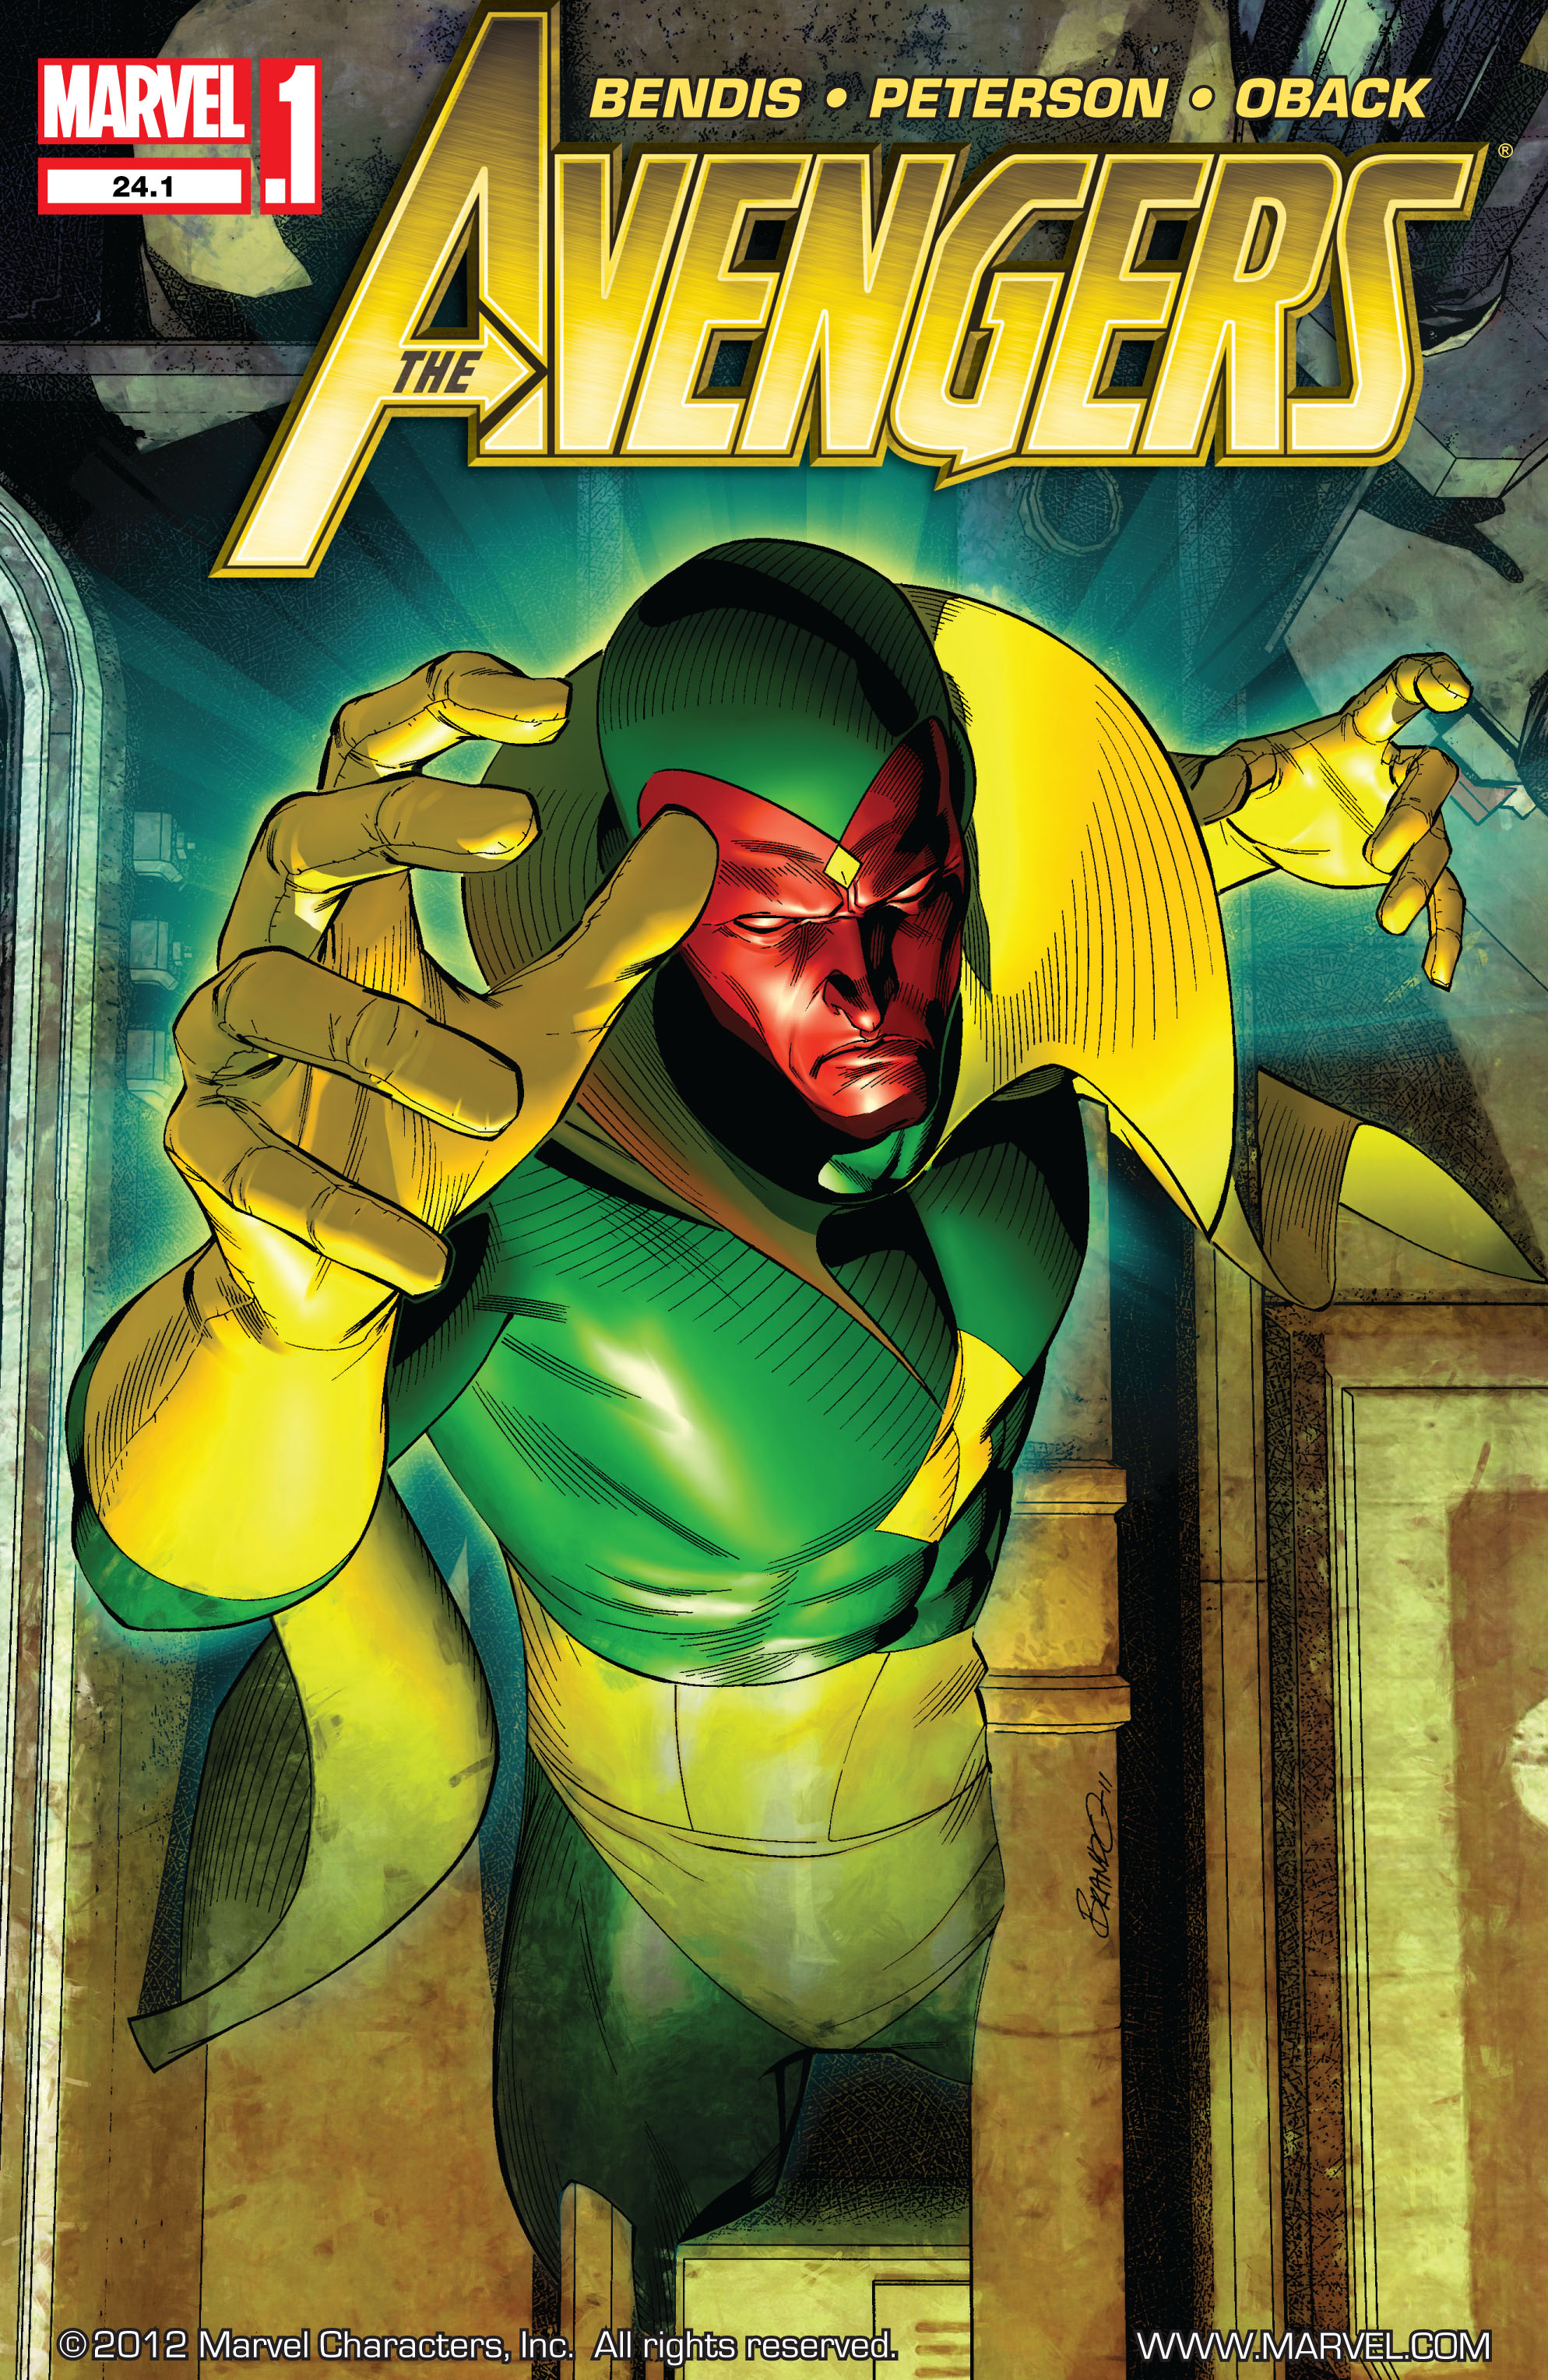 Read online Avengers (2010) comic -  Issue #24.1 - 1